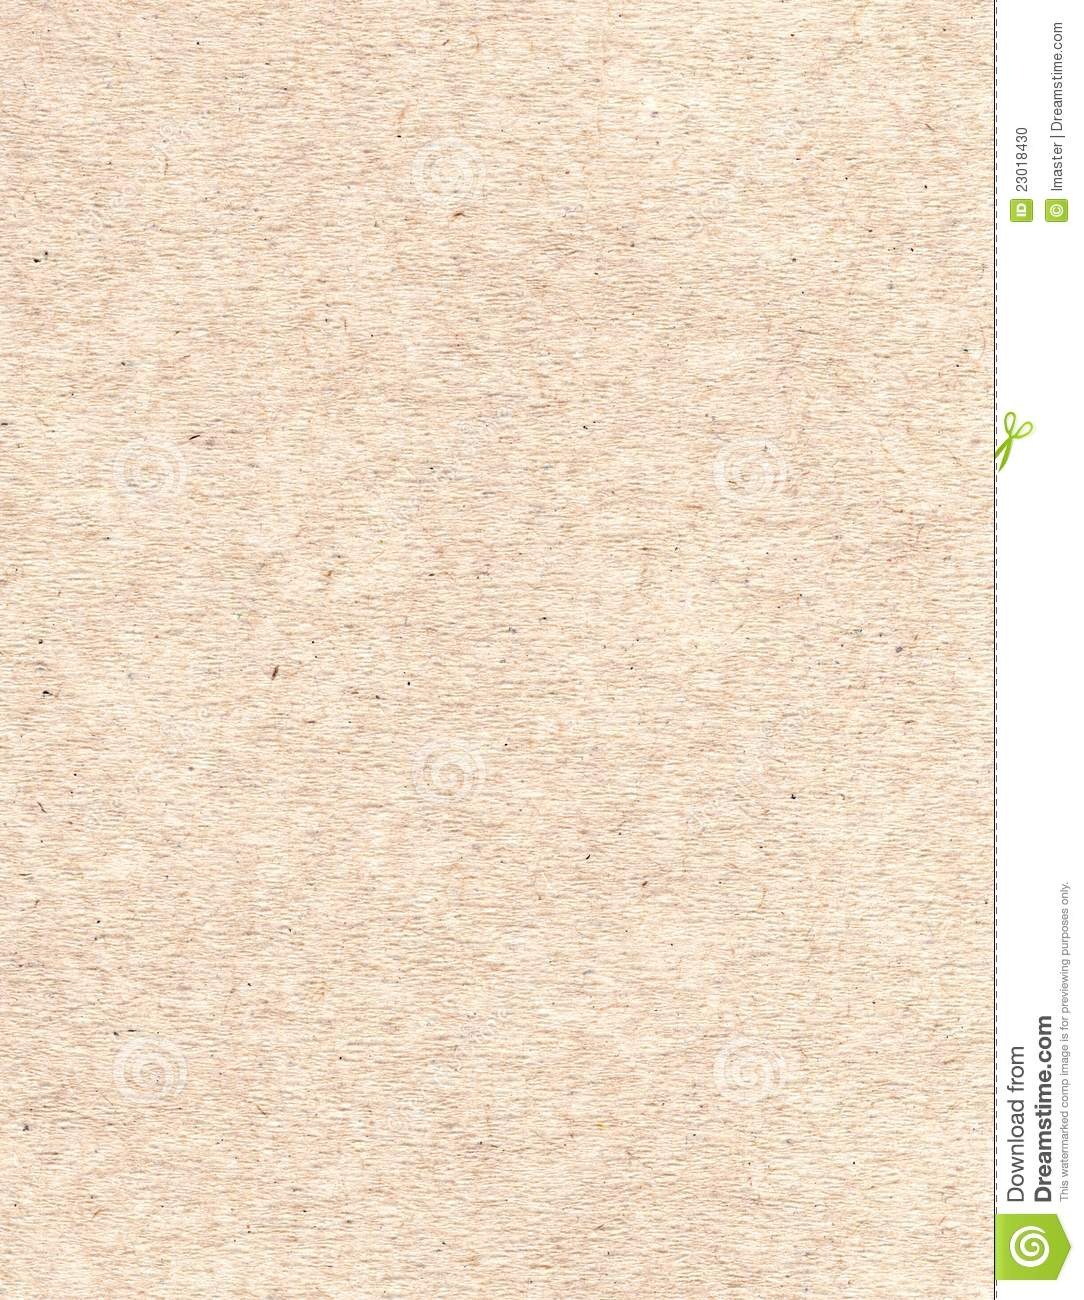 rough paper texture Download this pack of free, high resolution card stock paper textures to add depth and realism to your designs in photoshop, illustrator, and other graphics software.